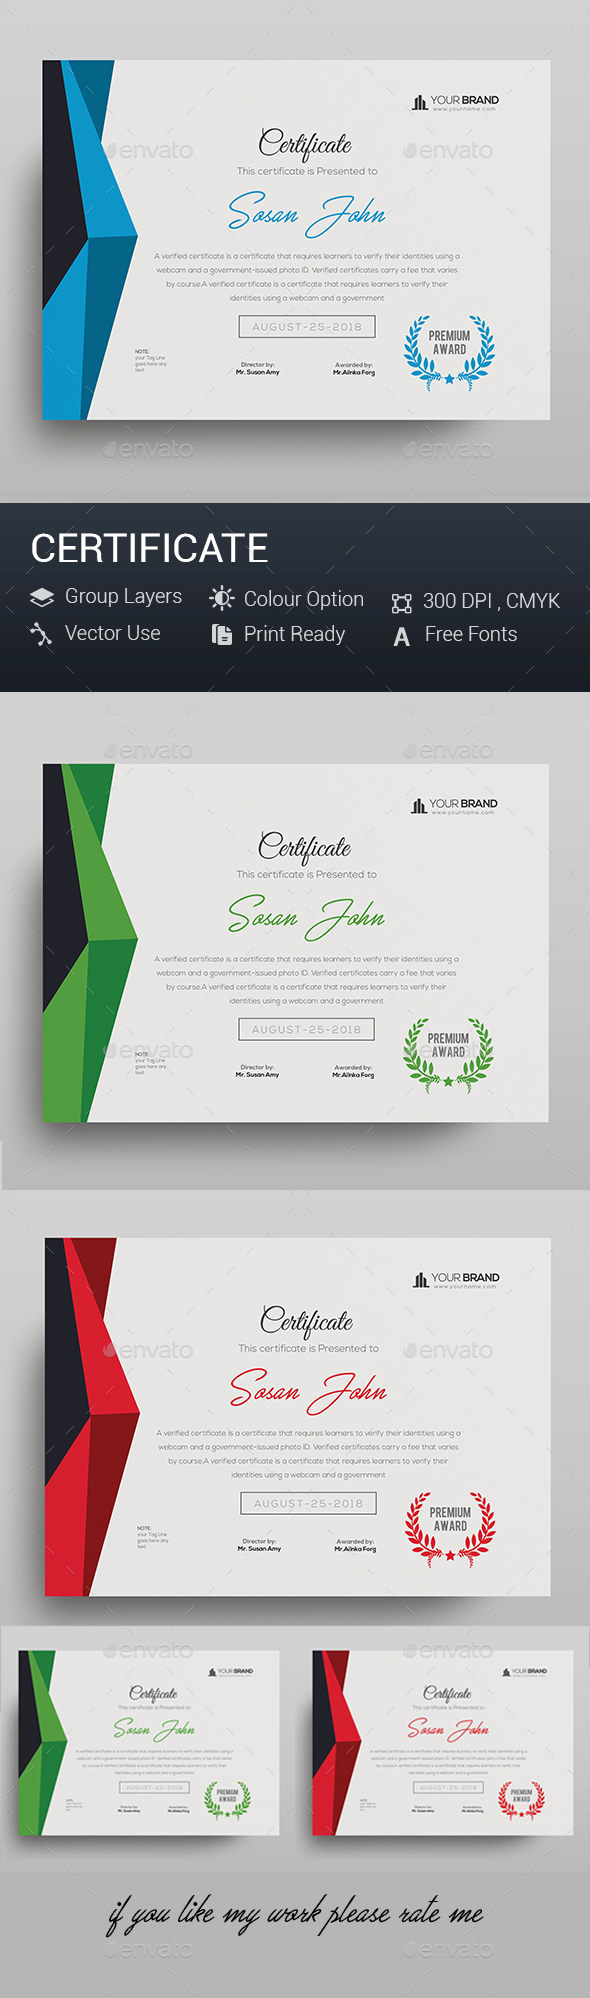 Certificate certificate templates certificate design and font logo simple clean corporate certificate template certificates stationery design xflitez Image collections